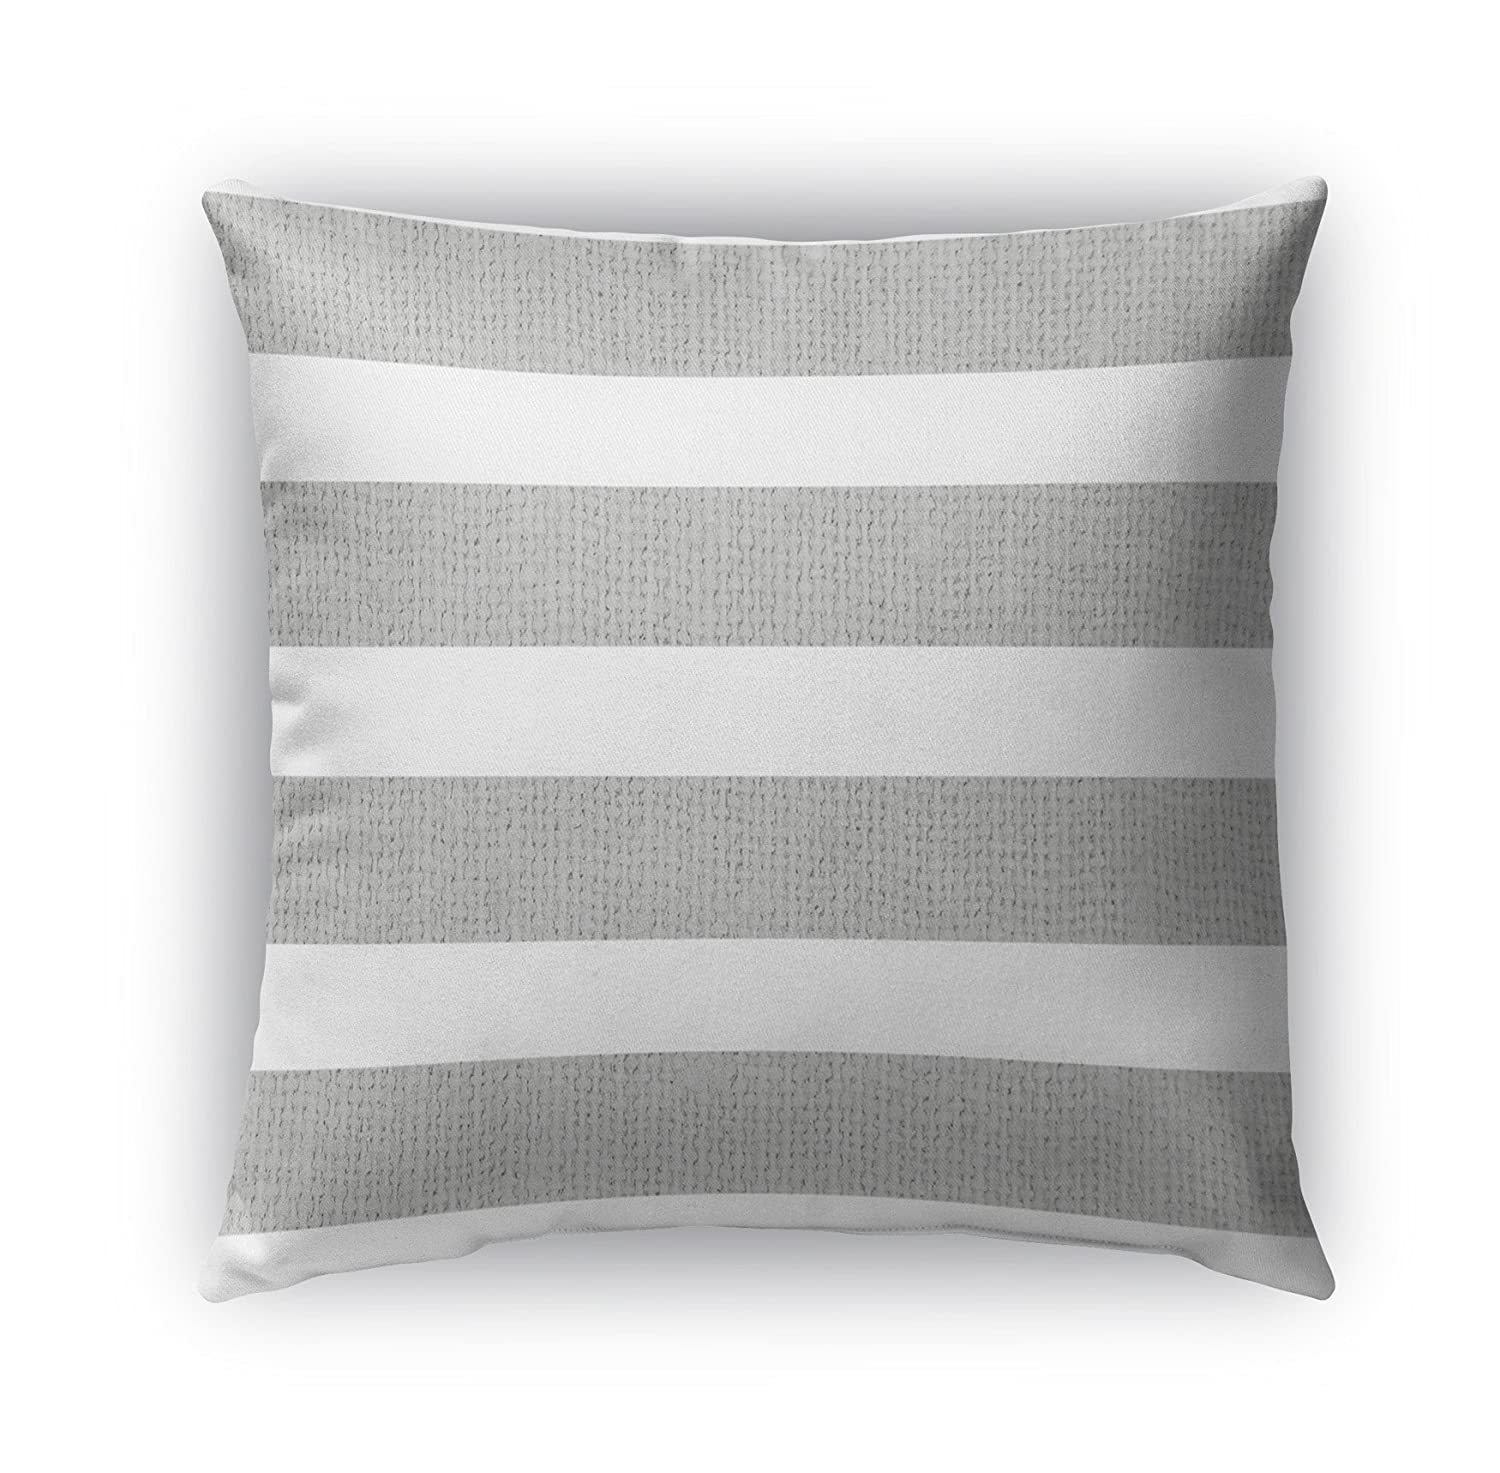 KAVKA Designs Centerville Indoor-Outdoor Pillow, Size: 20X20X6 - - Silver//White TELAVC8118OD20